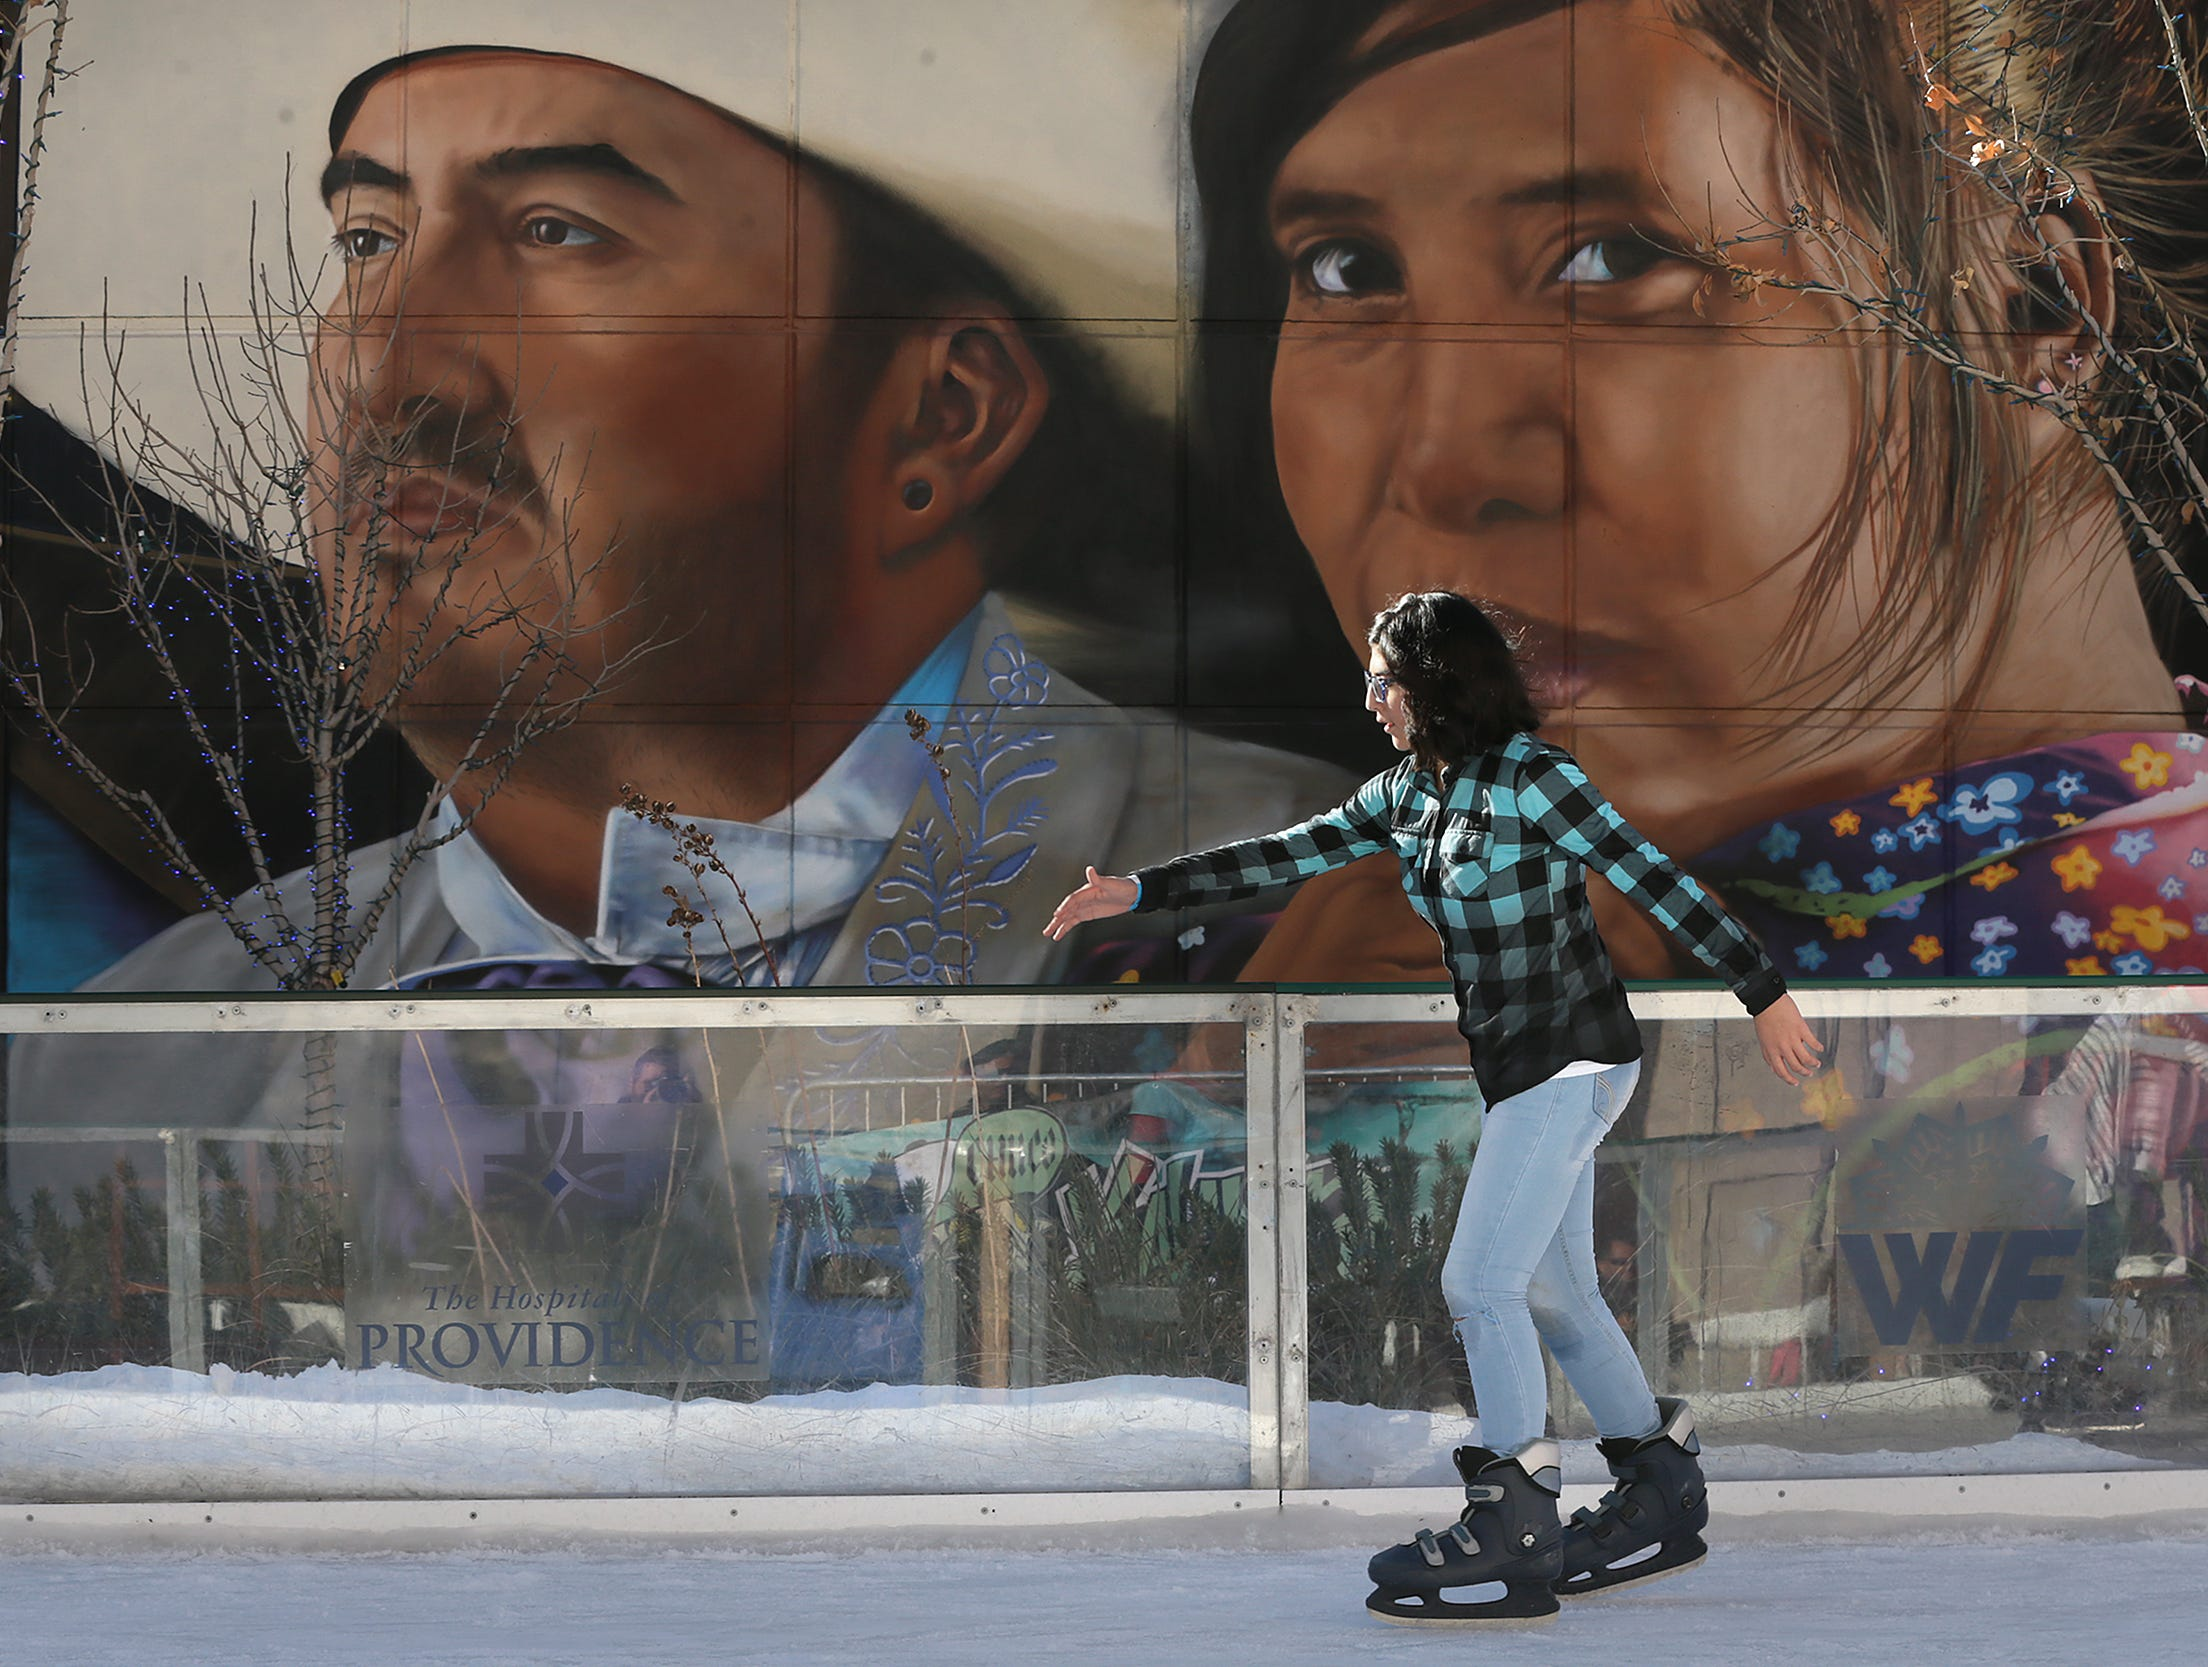 It is the final weekend to enjoy WinterFest in Downtown El Paso. The event sponsored by the Hospitals of Providence features ice skating, holiday shopping and other special events. WinterFest is located in Arts Festival Plaza.